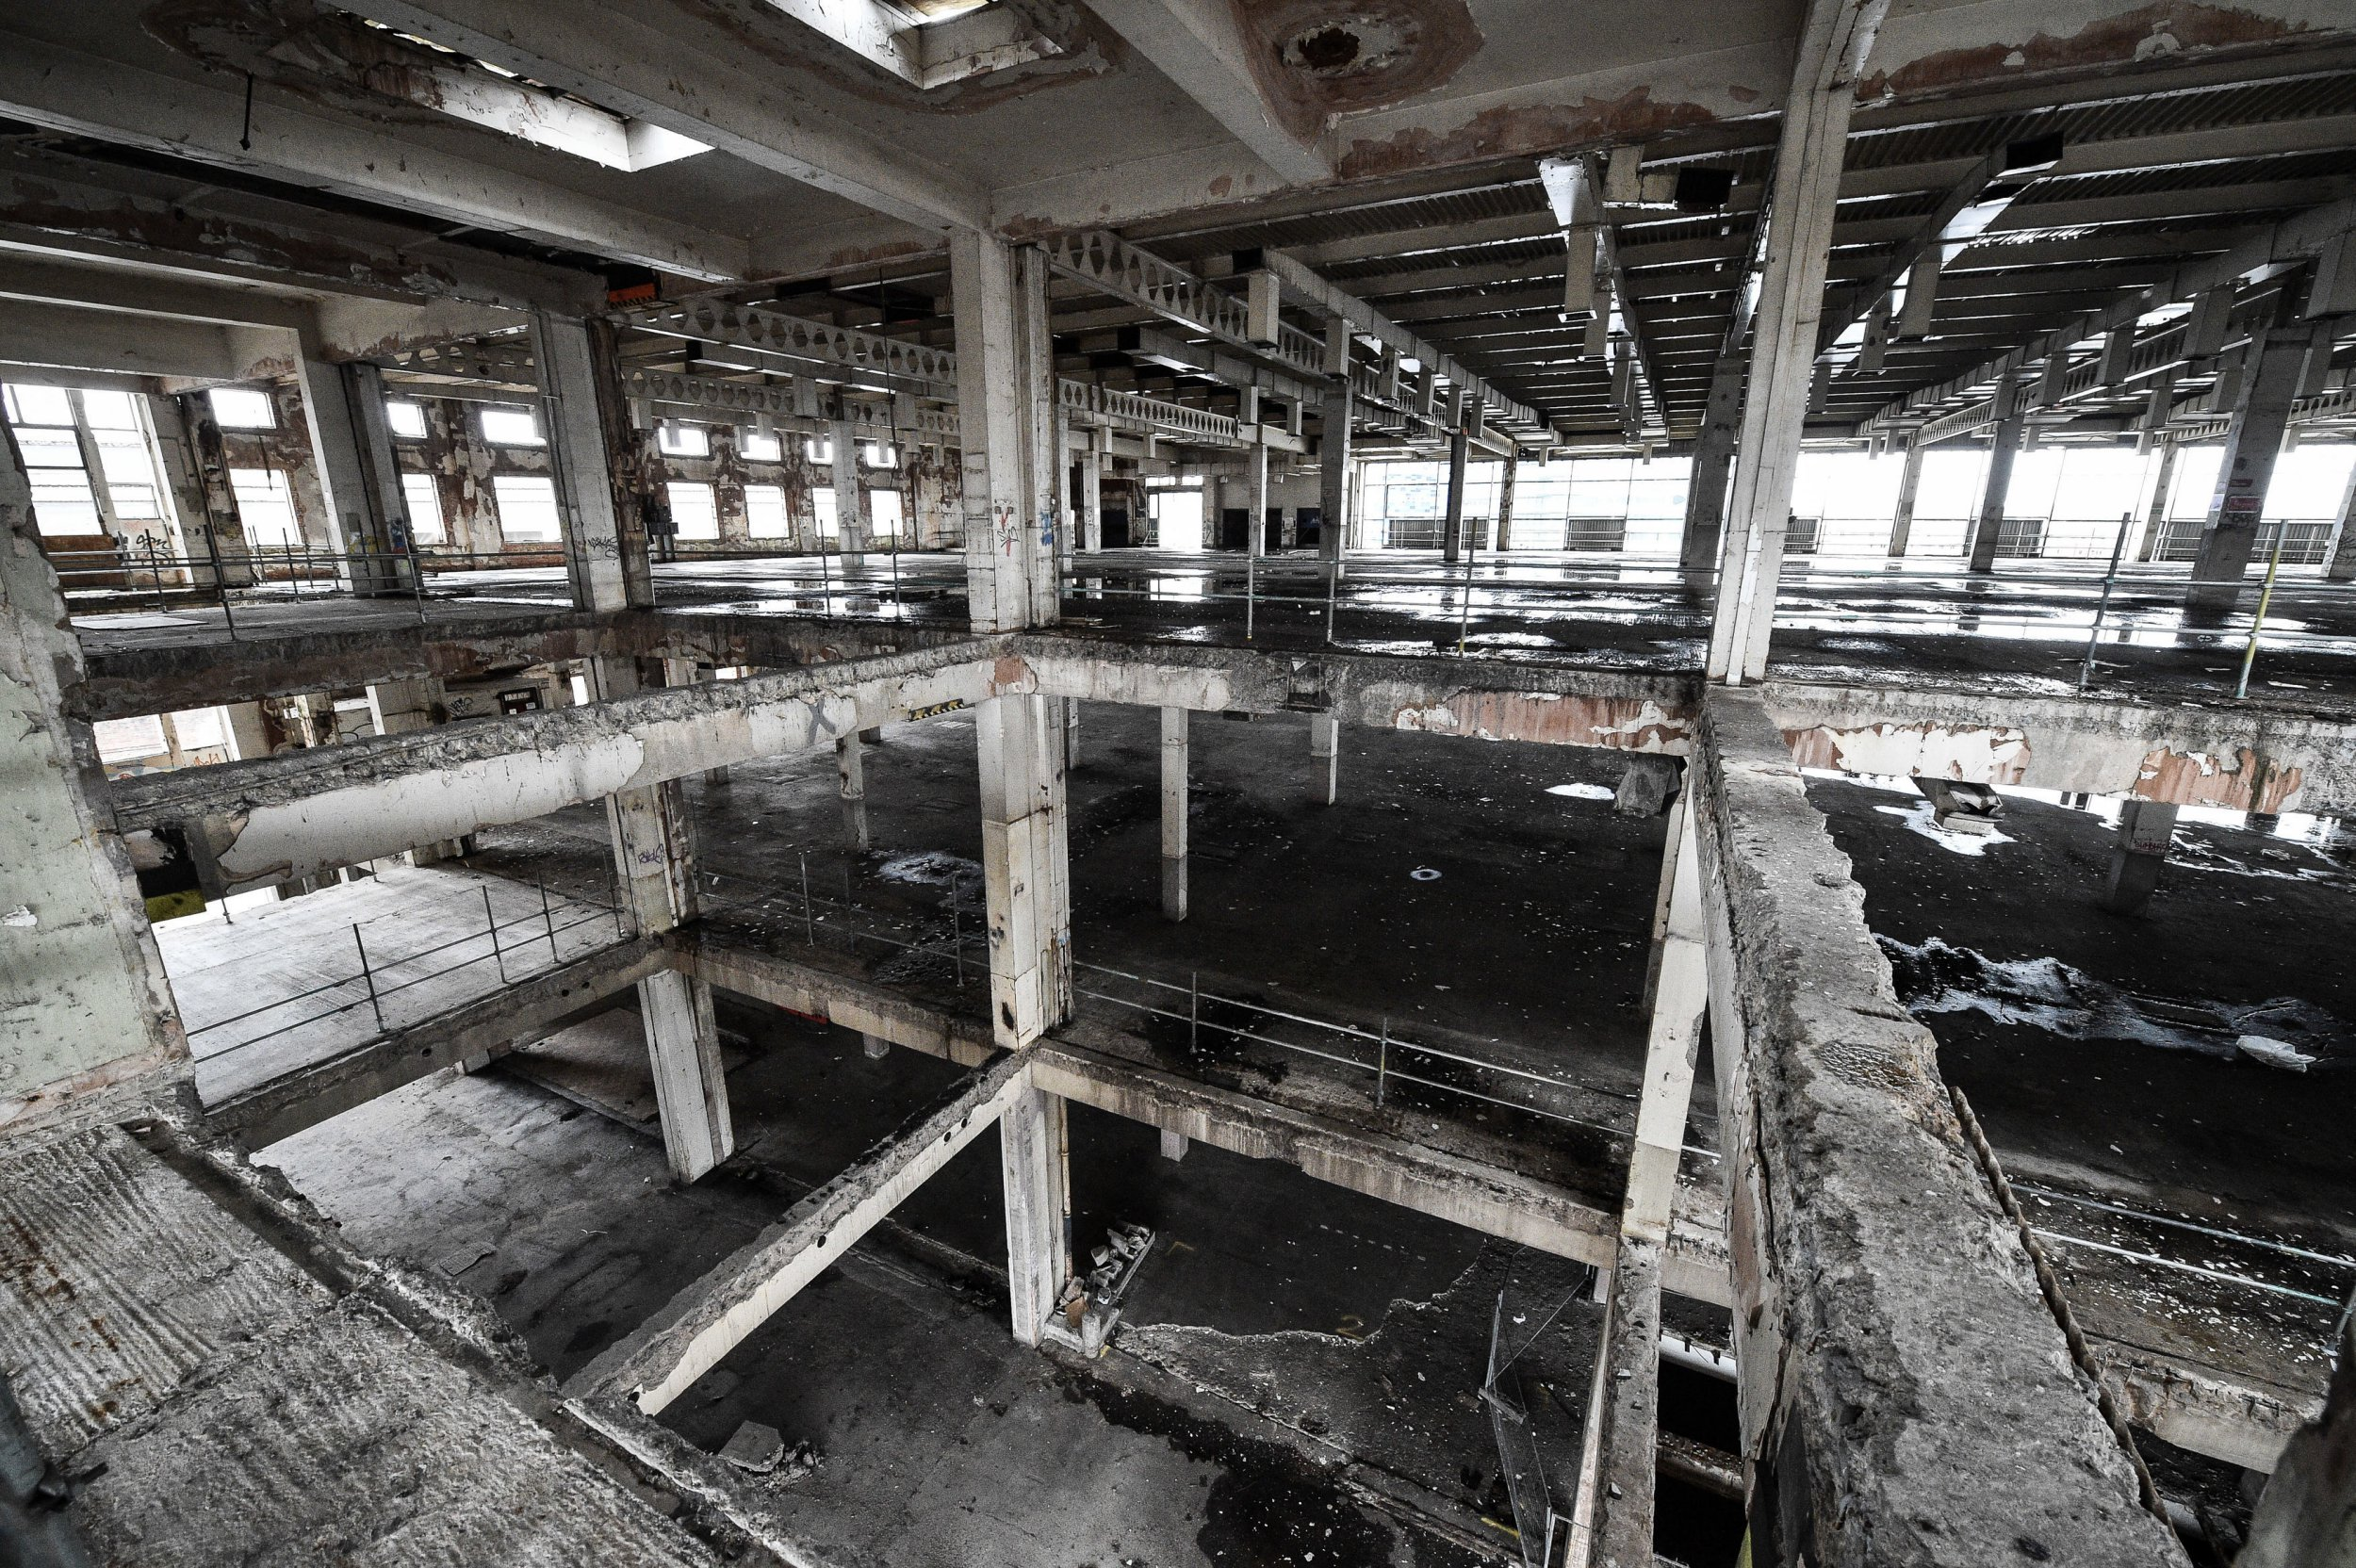 Missing floors are exposed inside the former Bristol Royal Mail sorting office, which is scheduled for demolition on 30th January 2019 after standing empty for 22 years, bringing an end to a building that became a playground for squatters, illegal ravers and fledgling graffiti artists. PRESS ASSOCIATION Photo. Picture date: Tuesday January 29, 2019. See PA story EDUCATION Demolition. Photo credit should read: Ben Birchall/PA Wire